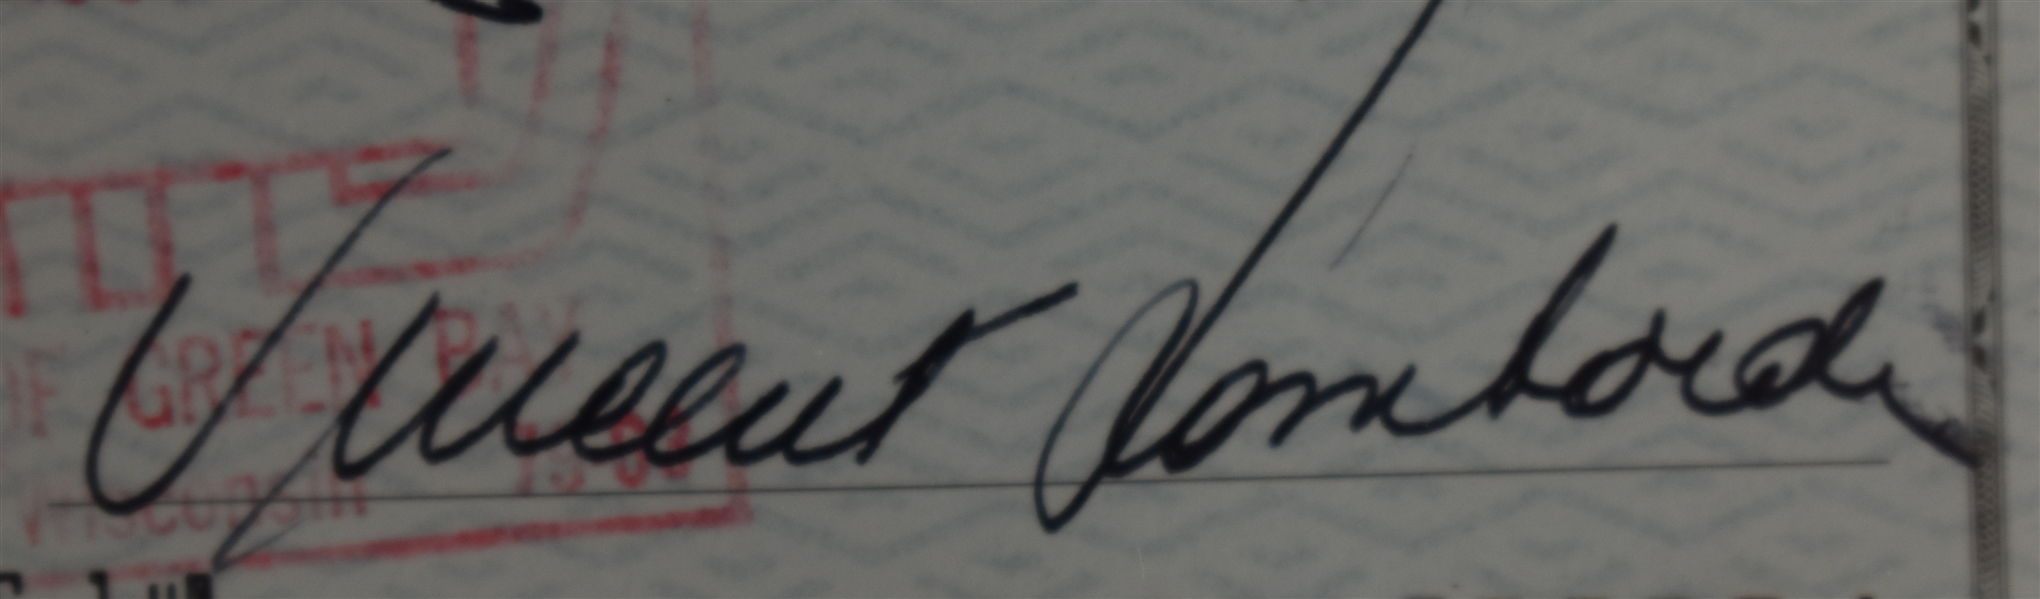 Vince Lombardi Signed 1968 Personal Check #292 BGS Authentic *Twice Signed Vince Lombardi*